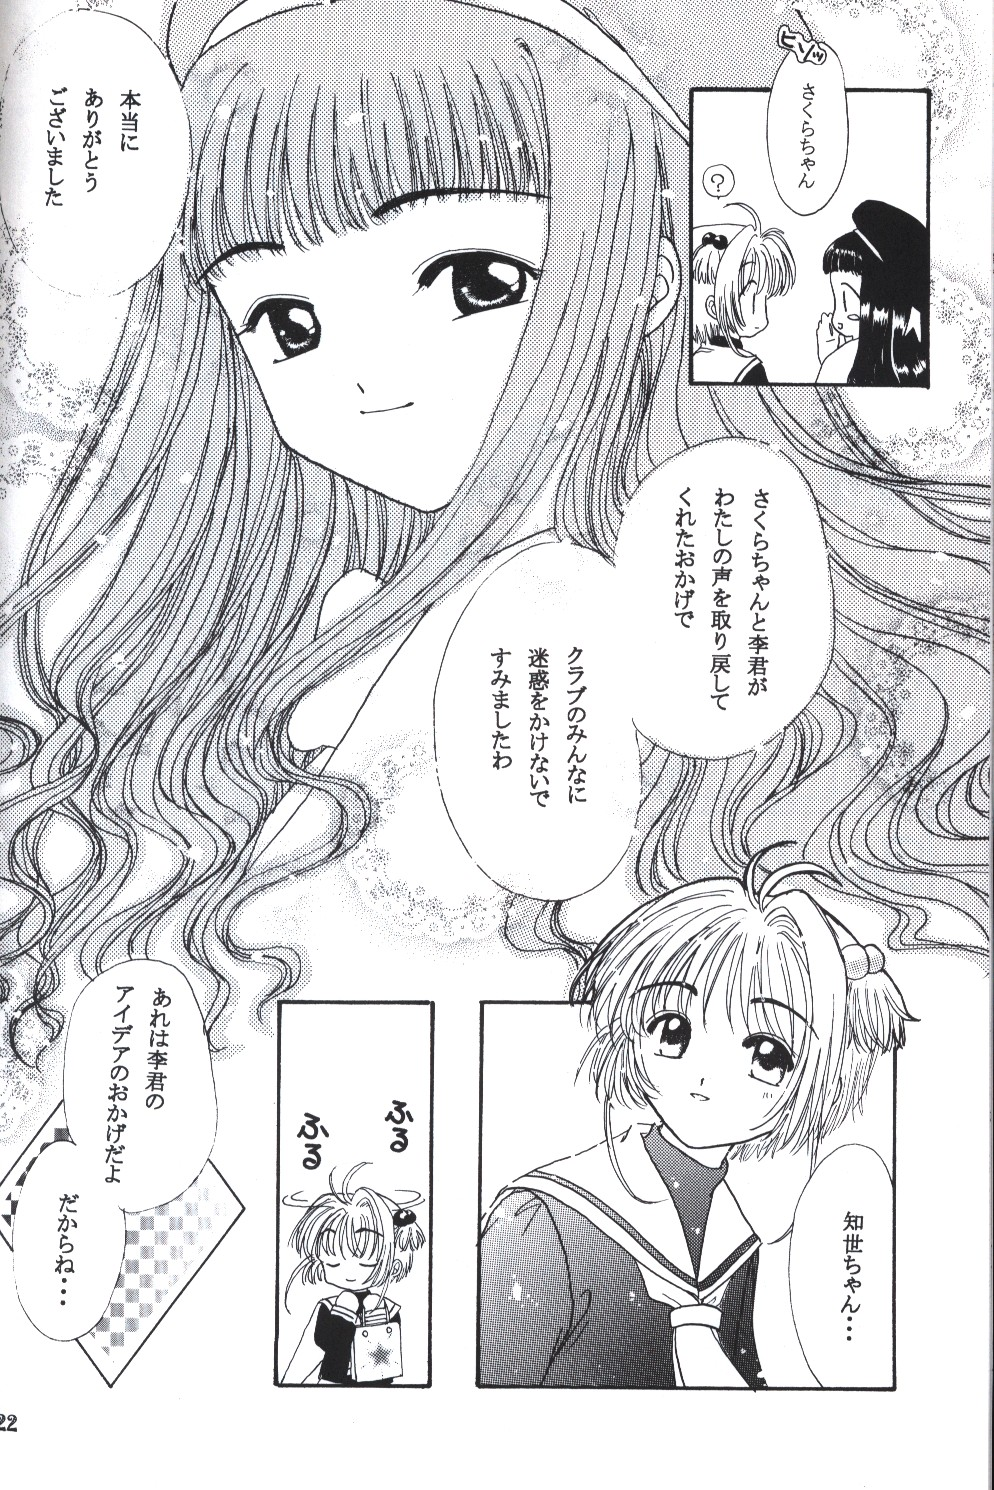 Doujinshi - Card Captor Sakura / Syaoran & Kinomoto Sakura (Spoonful of Mind) / HAPPY CROWN